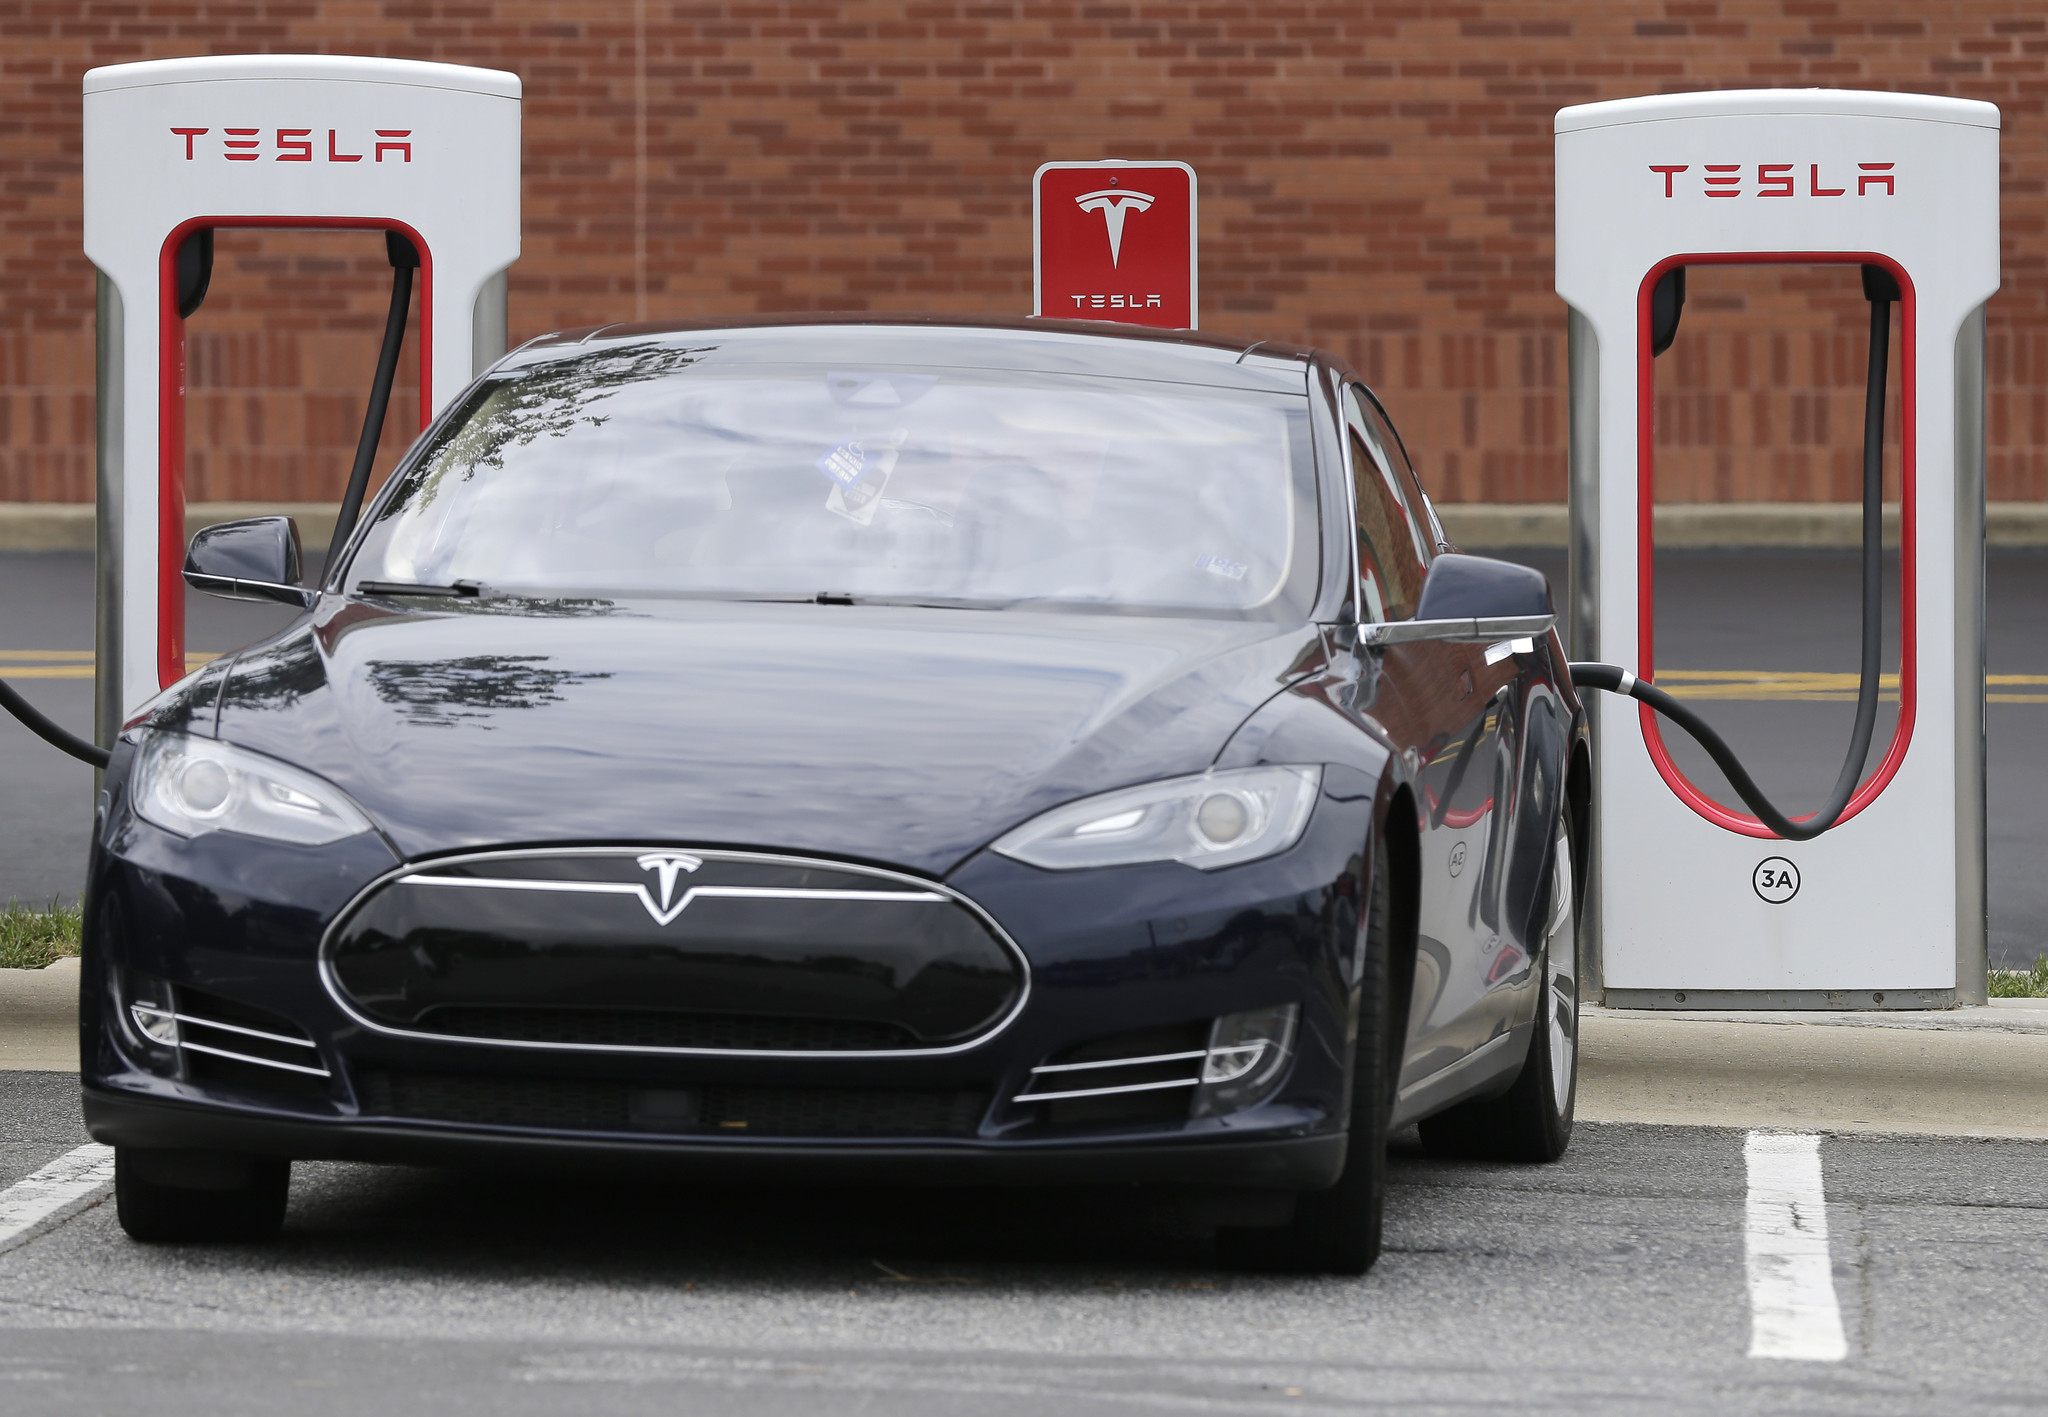 Tesla Adds Charging Stations In Downtown Chicago Chicago Tribune